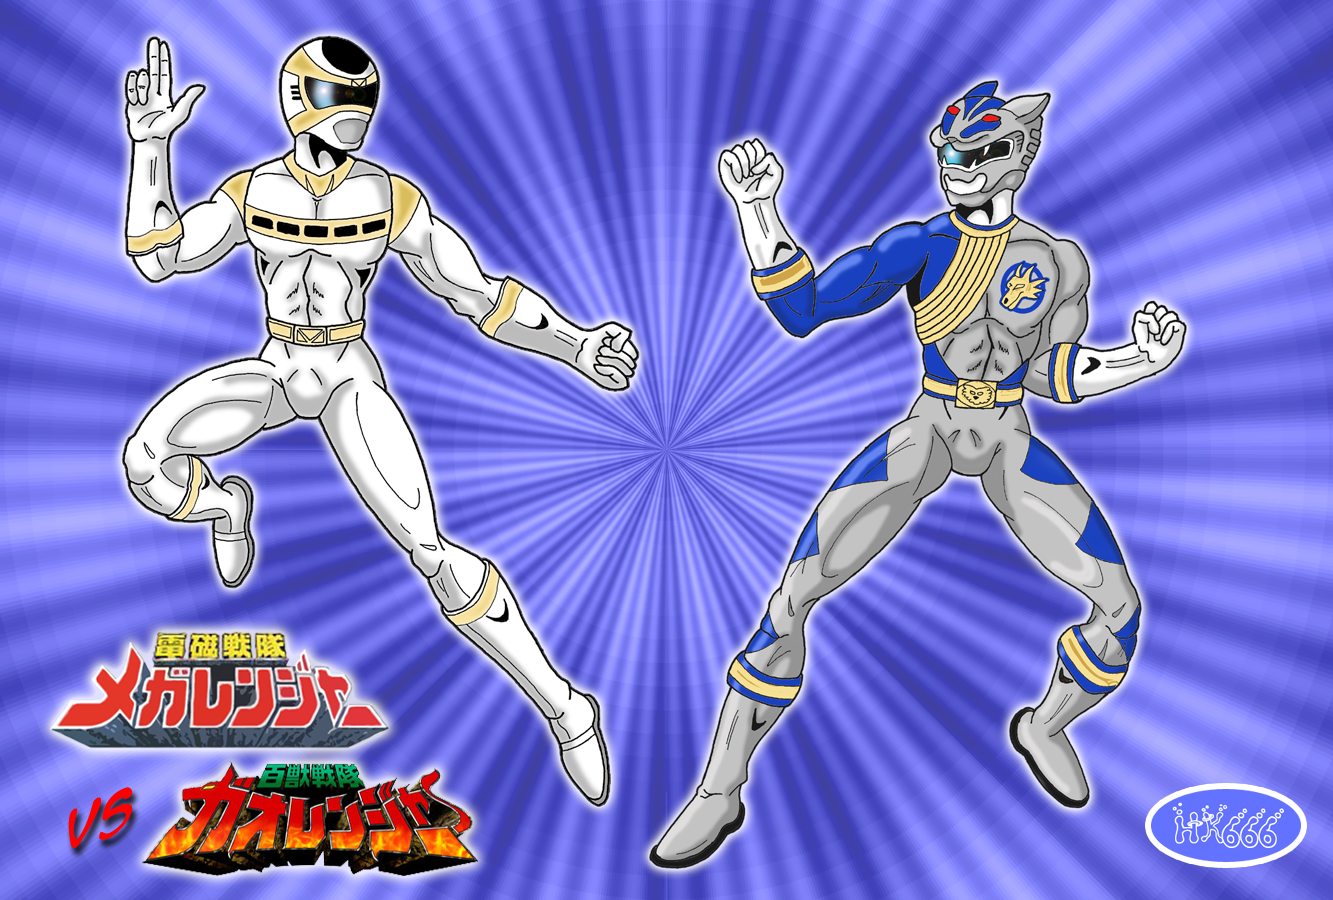 Battle of the Silver Rangers by HK666